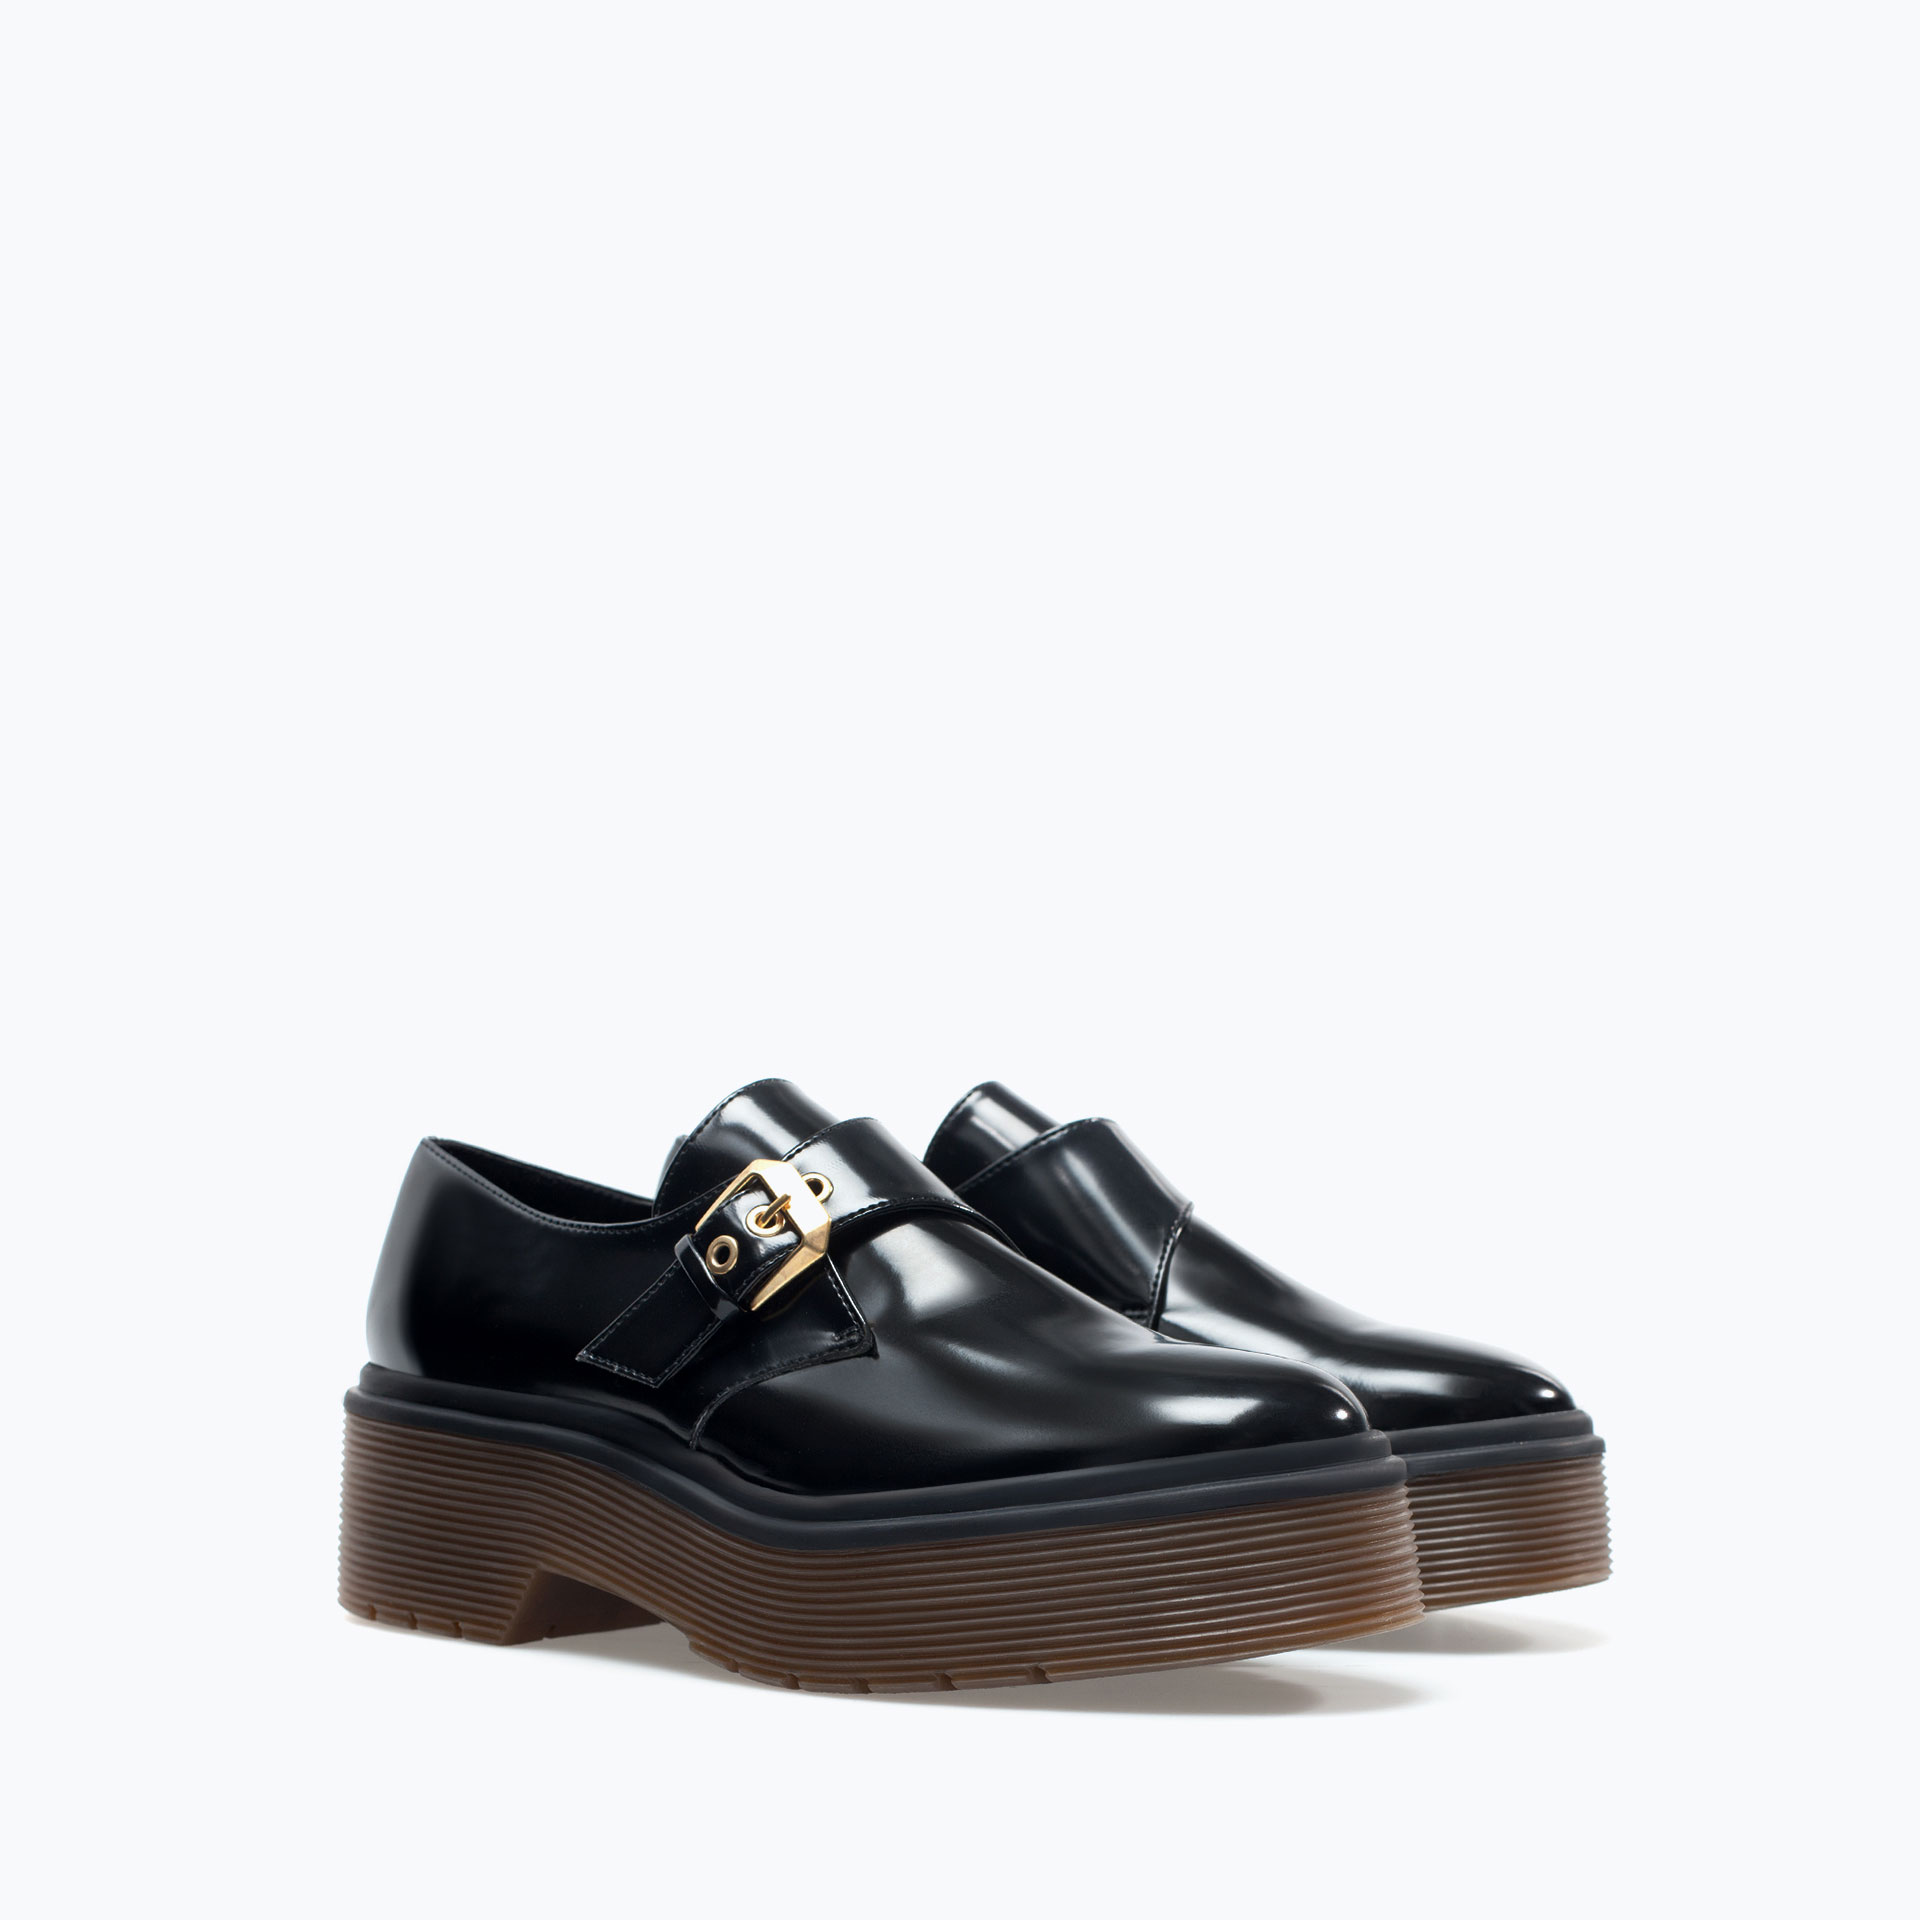 Monk shoe with platform sole